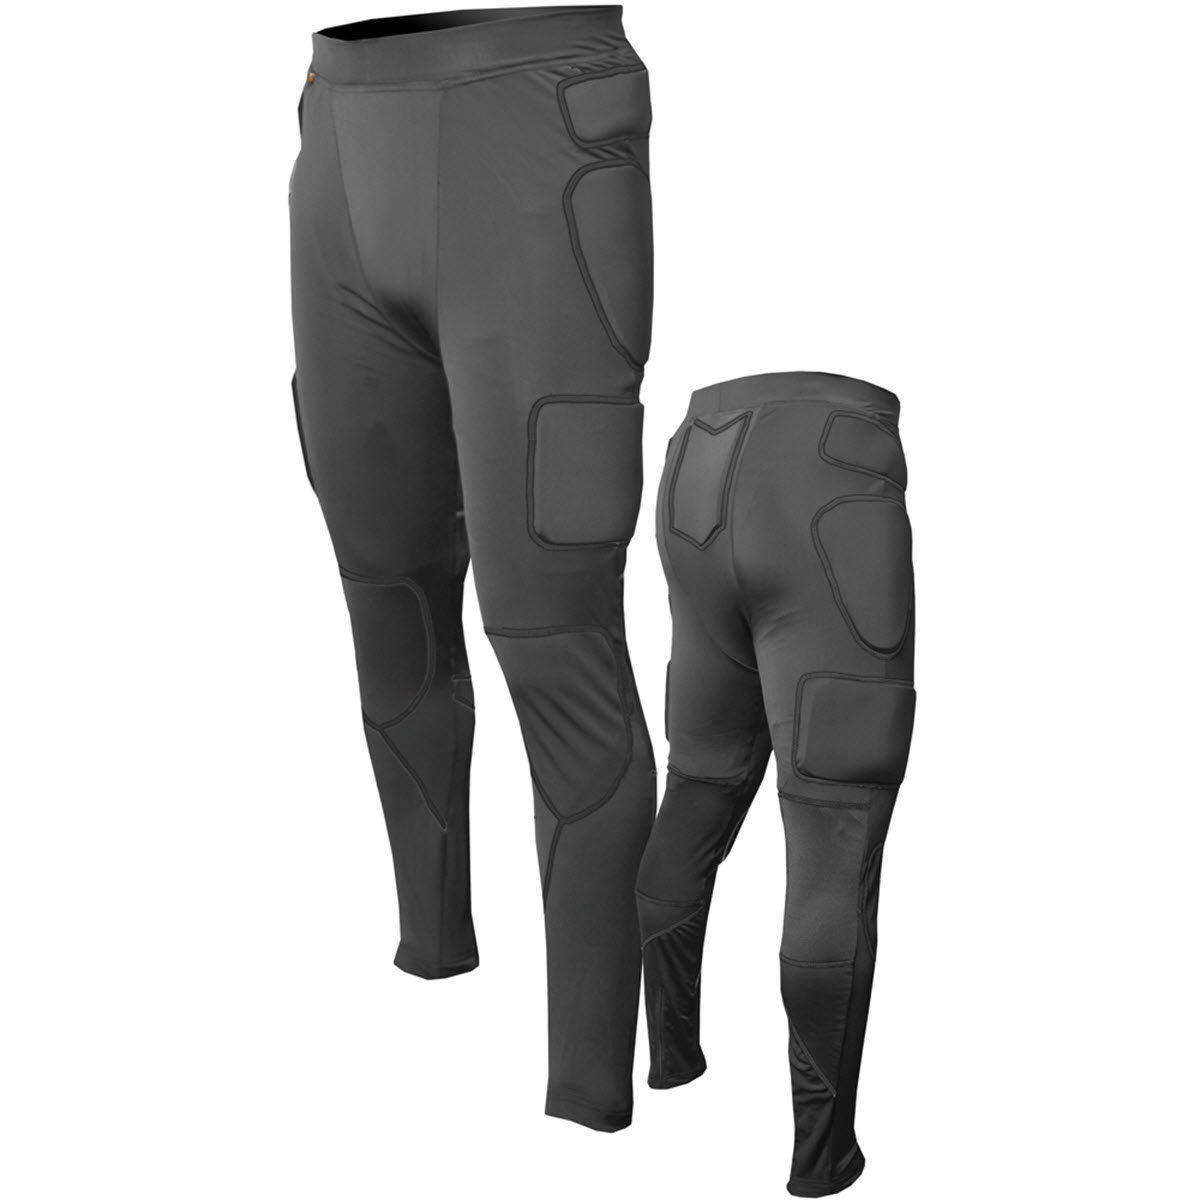 Demon Armortec Long Pants D30 Mens Snowboard Coccyx Protection 2015